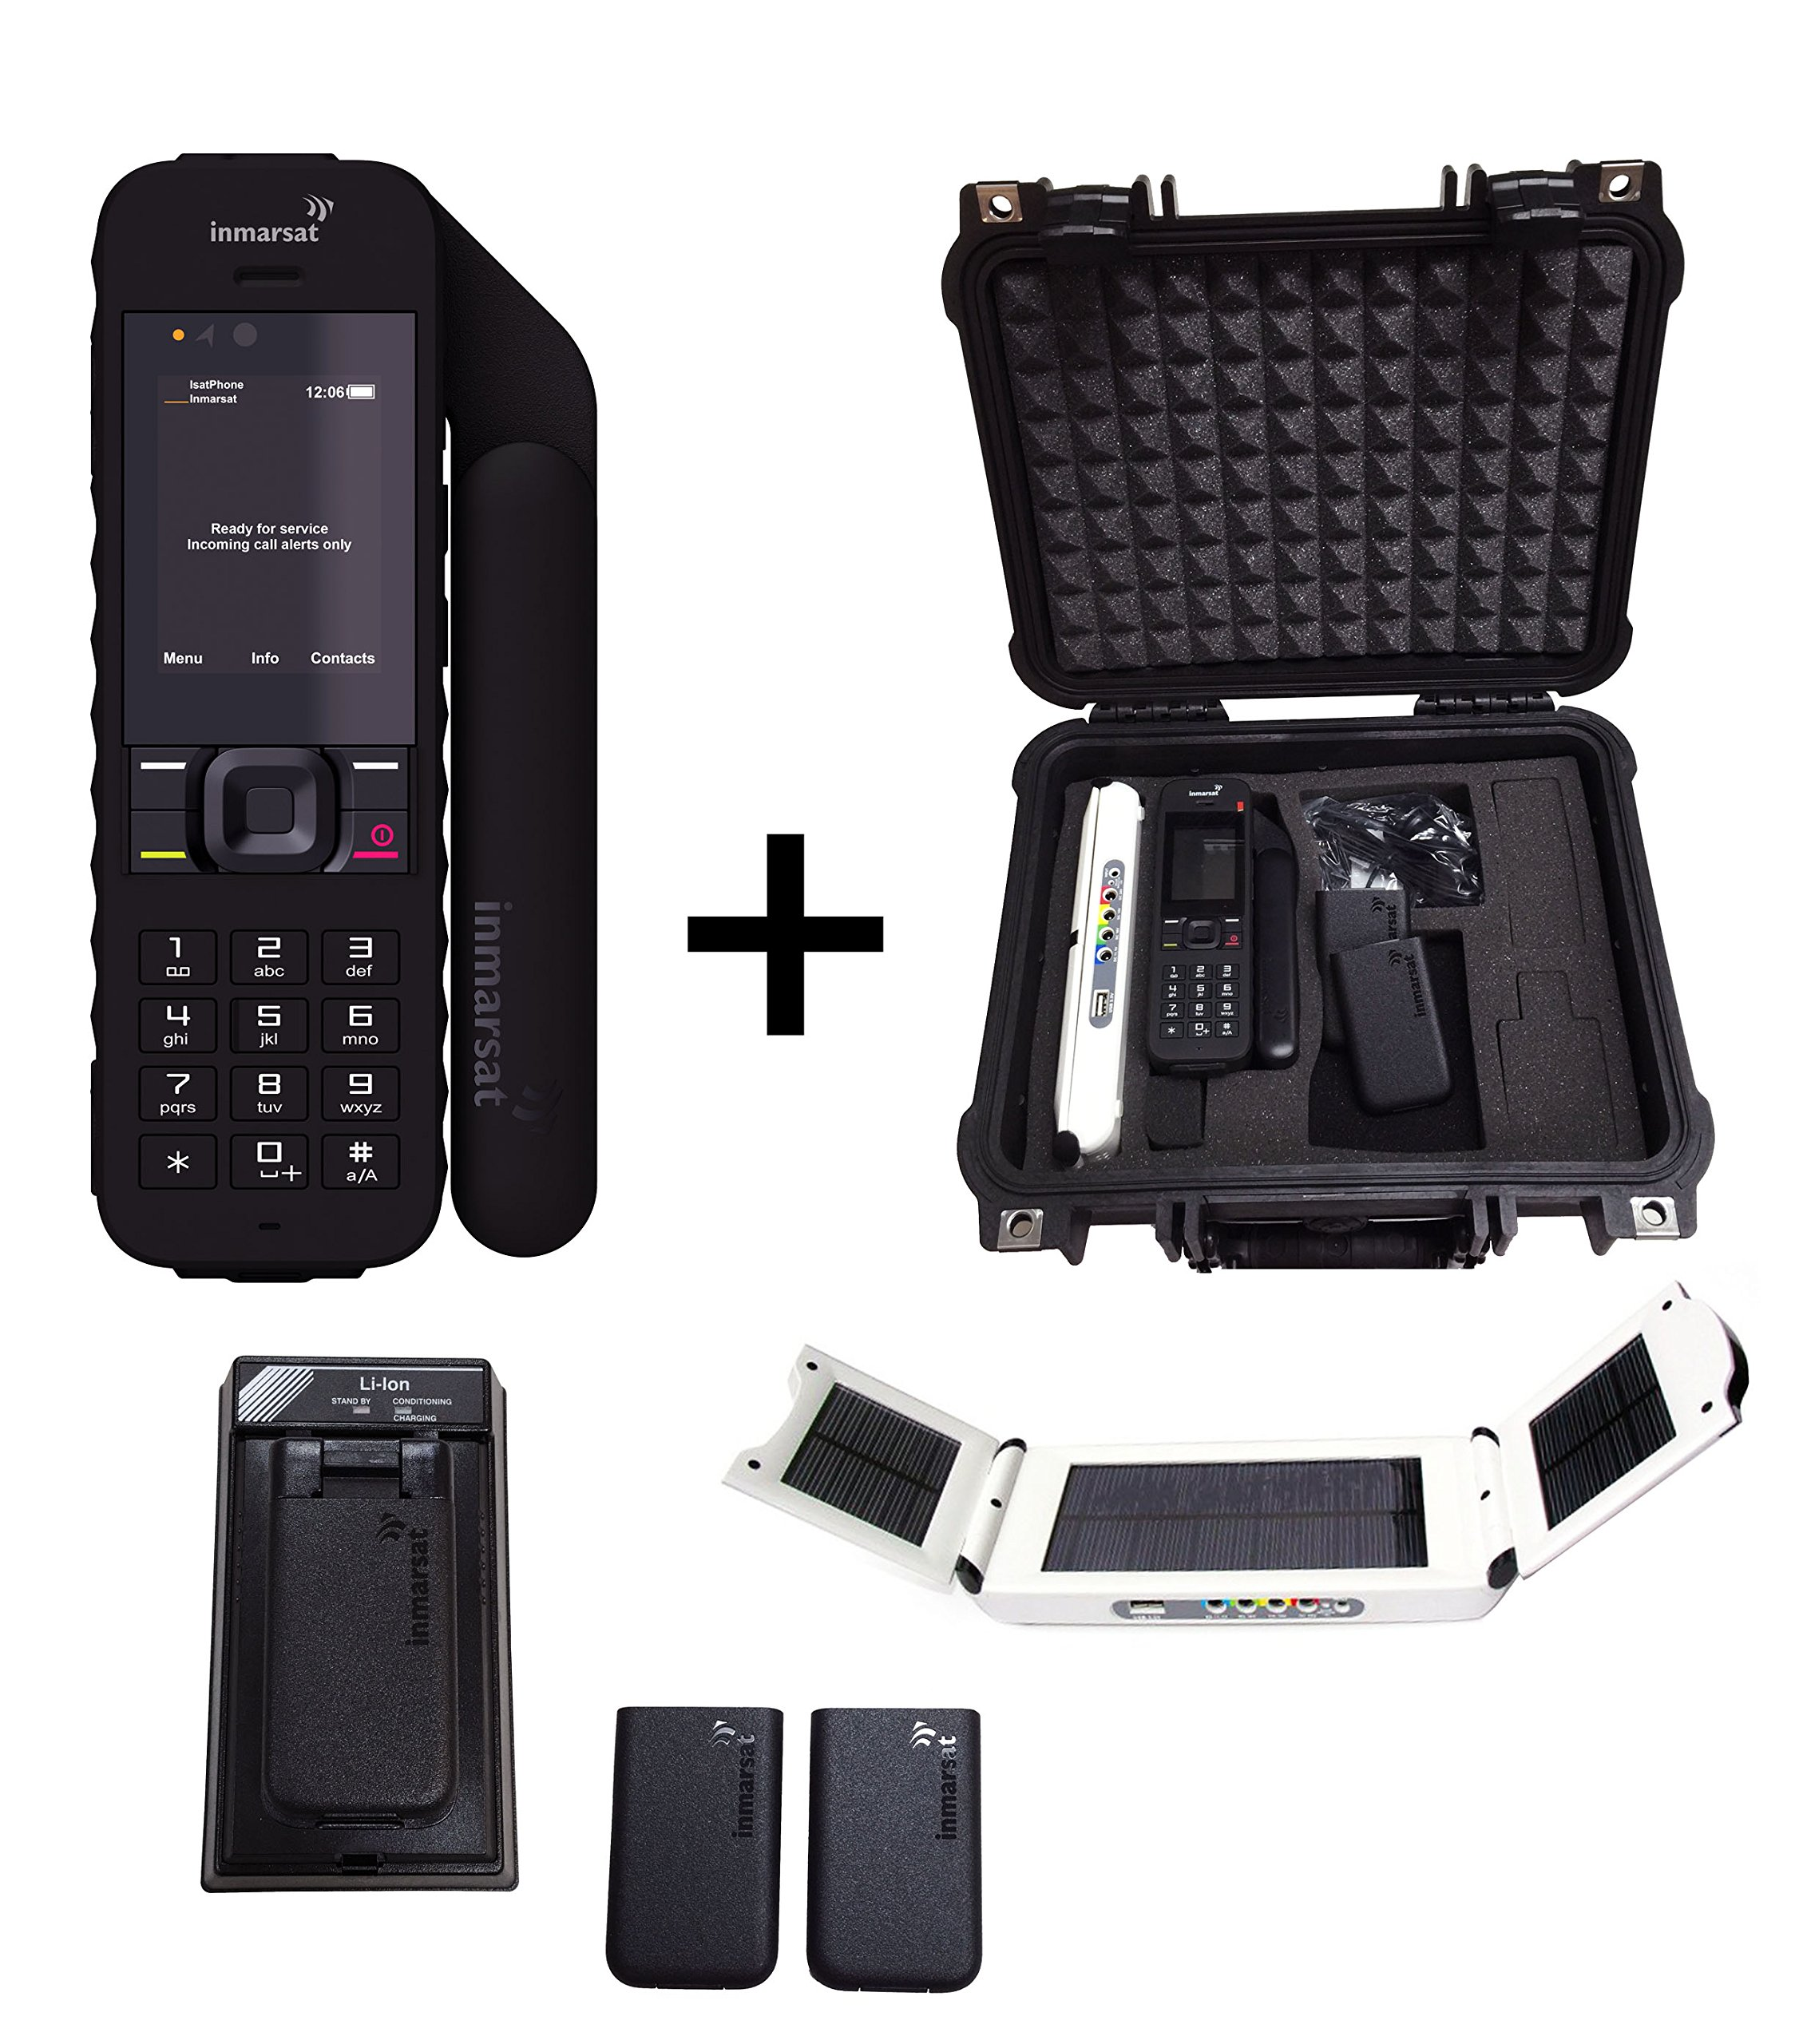 SatPhoneStore Inmarsat IsatPhone 2 Satellite Phone Emergency Responder Package w/ Solar Panel by Inmarsat